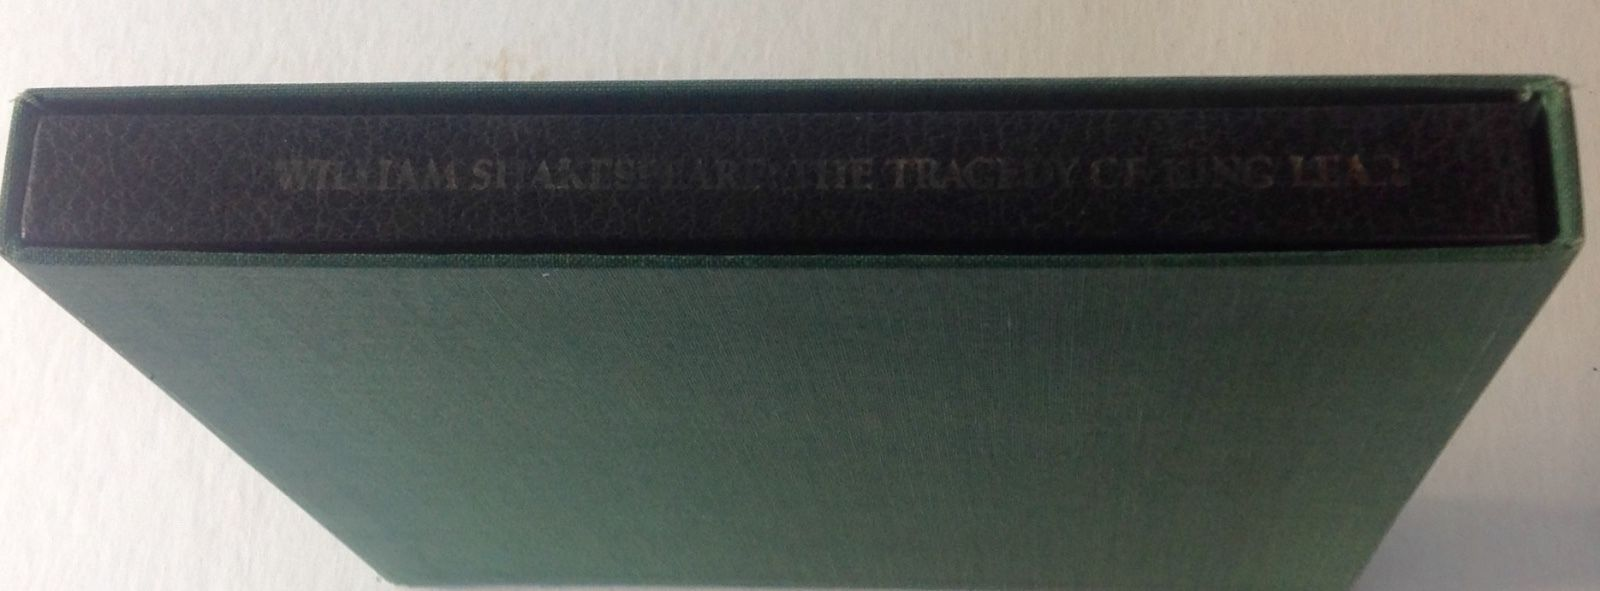 William Shakespeare The Tragedy of King Lear 1968 Graphic Arts Pub. HC Slipcase